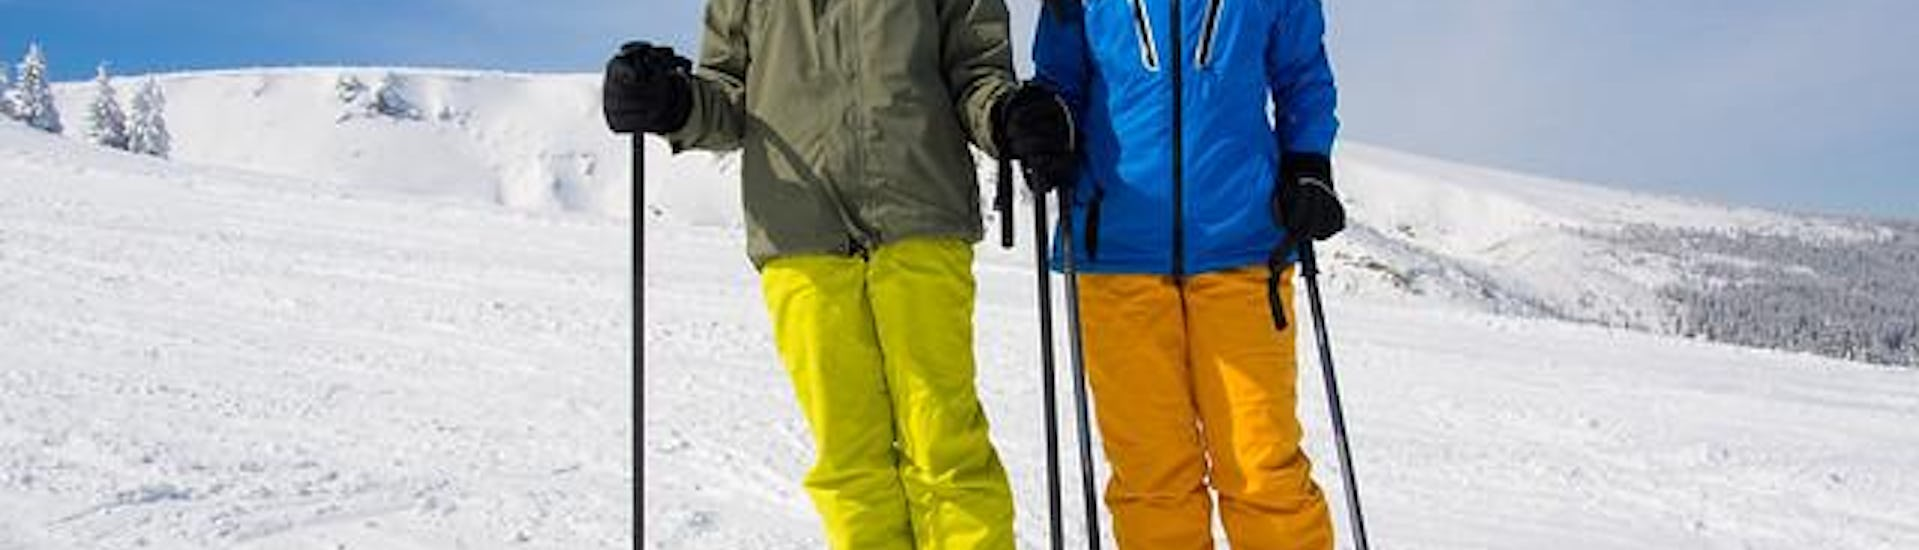 """Ski Lessons """"All-in-One"""" for Adults - Beginner"""